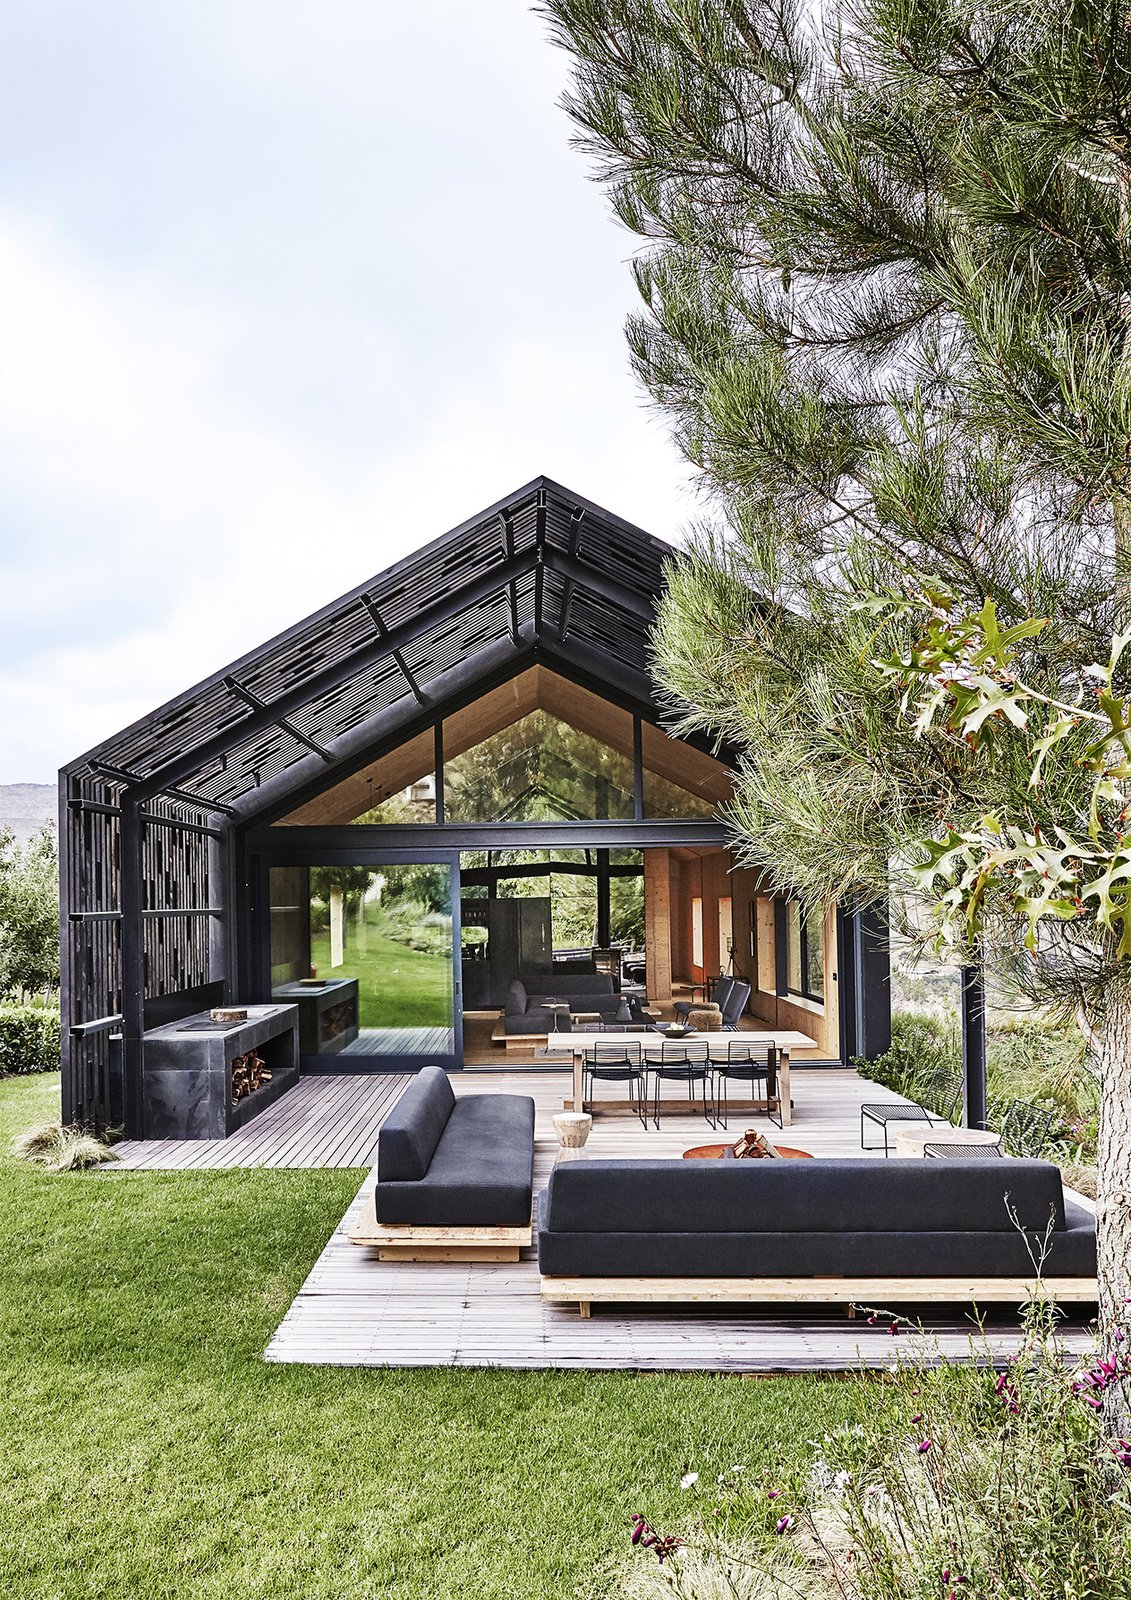 Exterior, House Building Type, Wood Siding Material, and Gable RoofLine A blackened-timber pergola extends from the modern barn that architect Greg Scott designed for Jody and Deirdre Aufrichtig in the Elgin Valley, an apple- and grape-growing region near Cape Town. Made of narrow slats stabilized with randomly scattered blocks of wood, it covers roughly half of the outdoor deck.  Photos from A Hotelier Realizes a Modern Barn for His Family's Retreat in South Africa